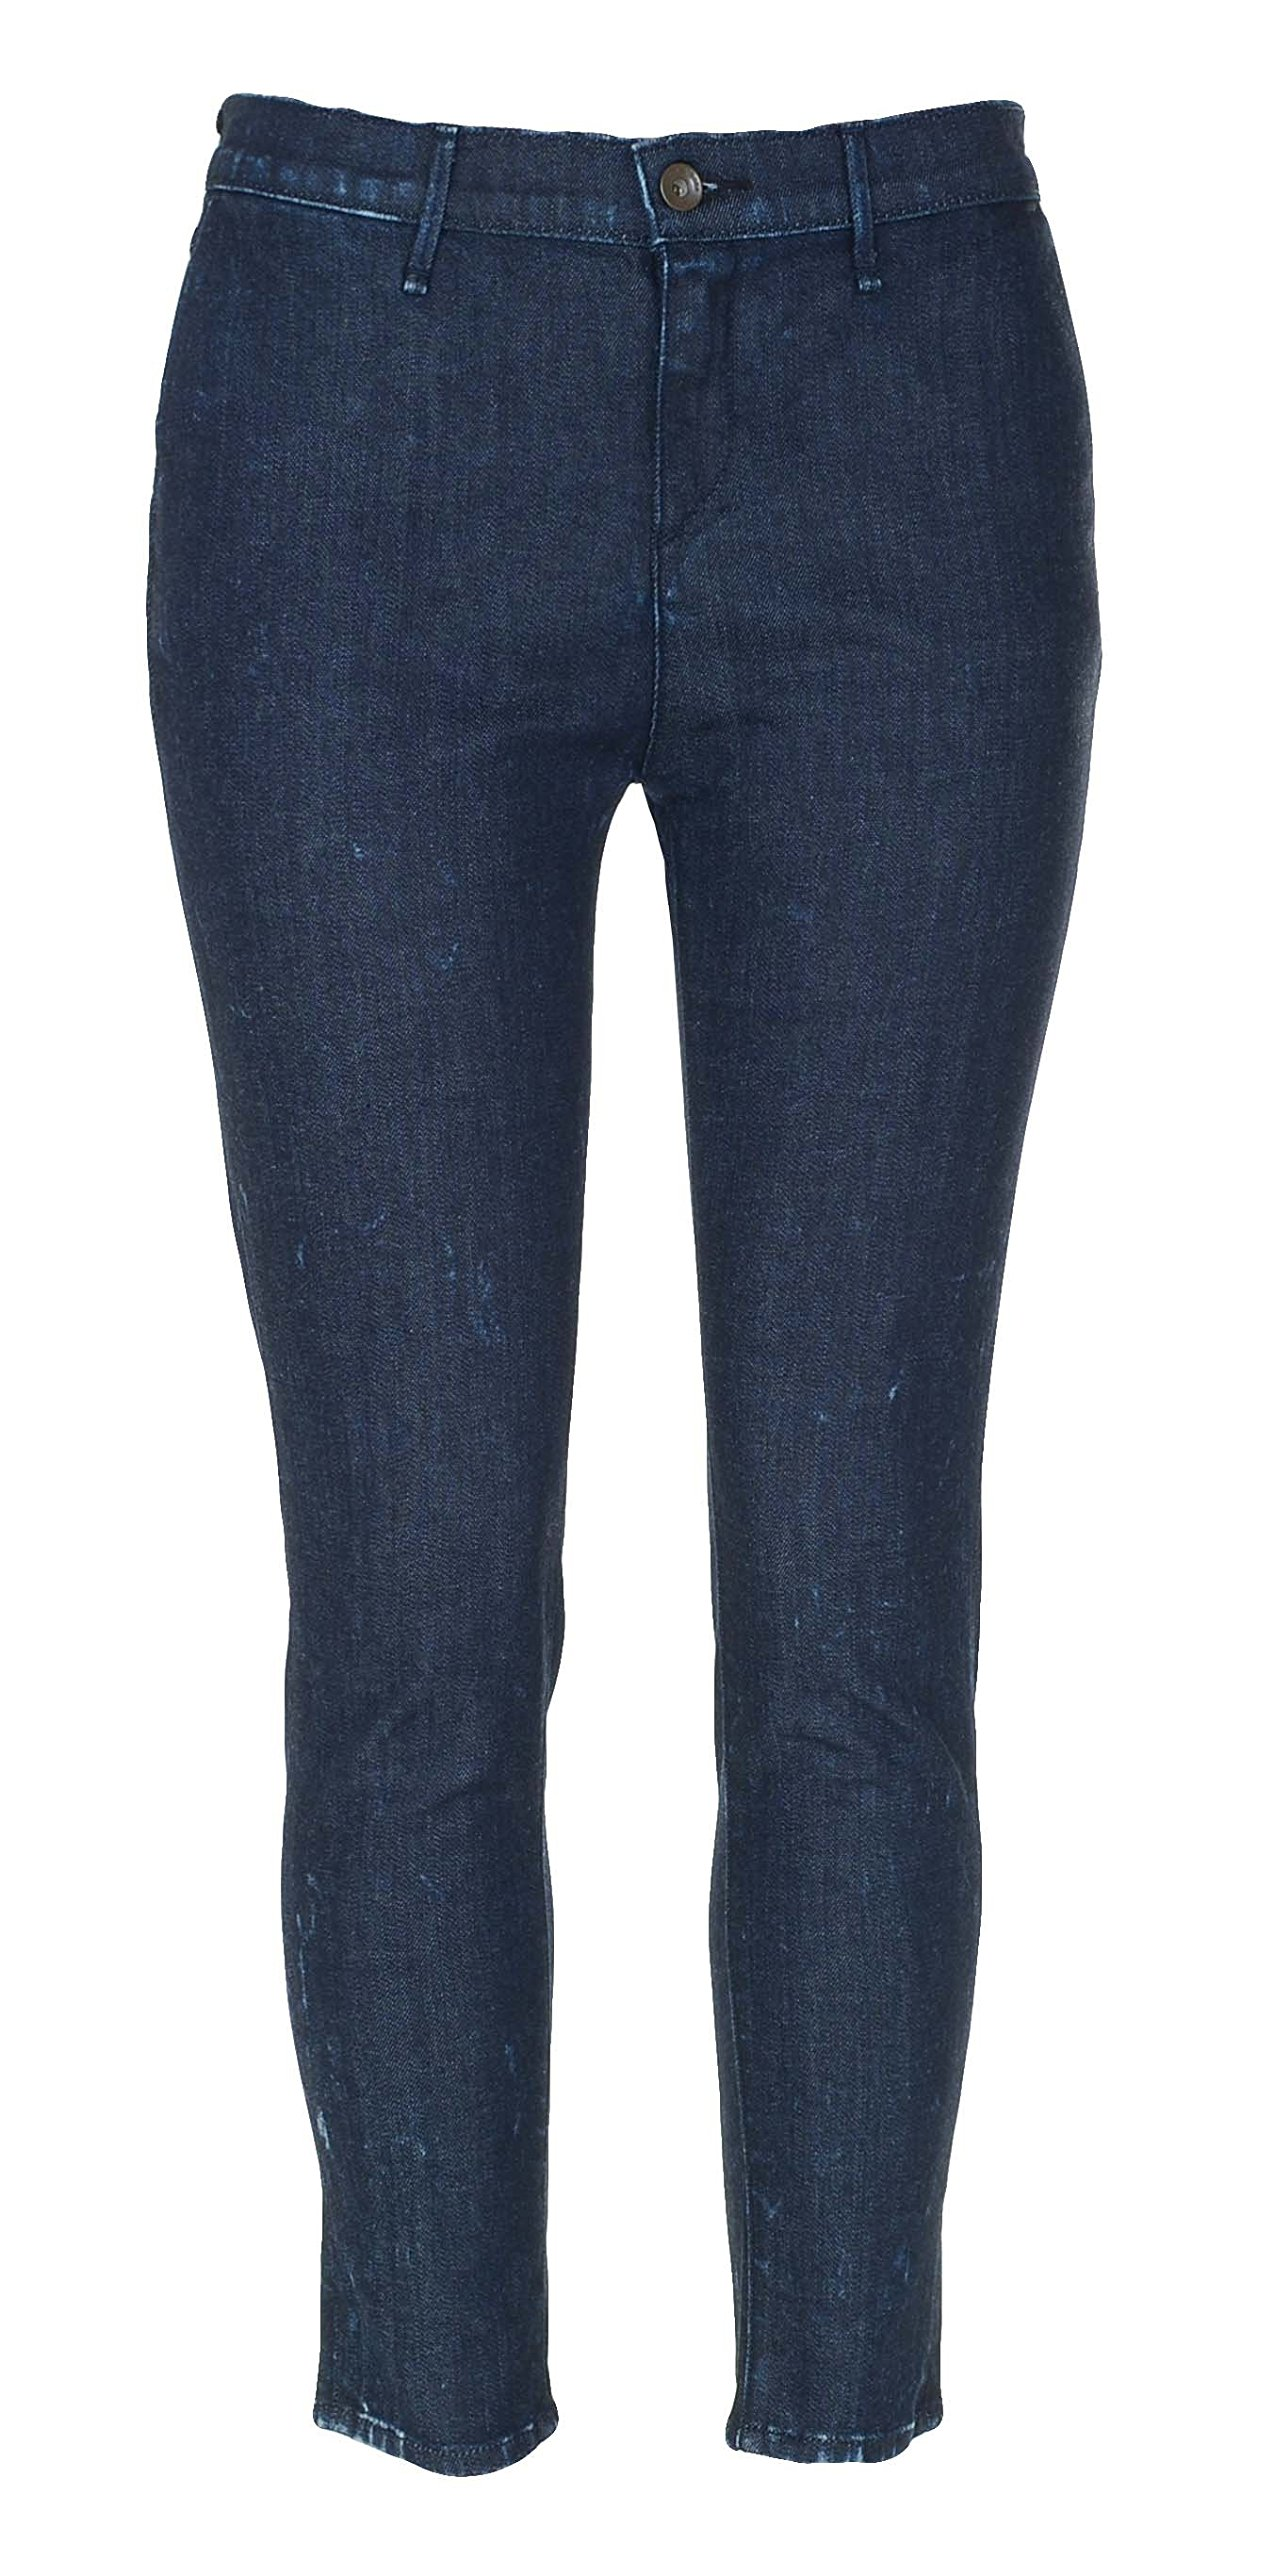 Rag & Bone Womens Jeans Size 26 RB-Dash Trouser in Ice Blue (26, Ice Blue)